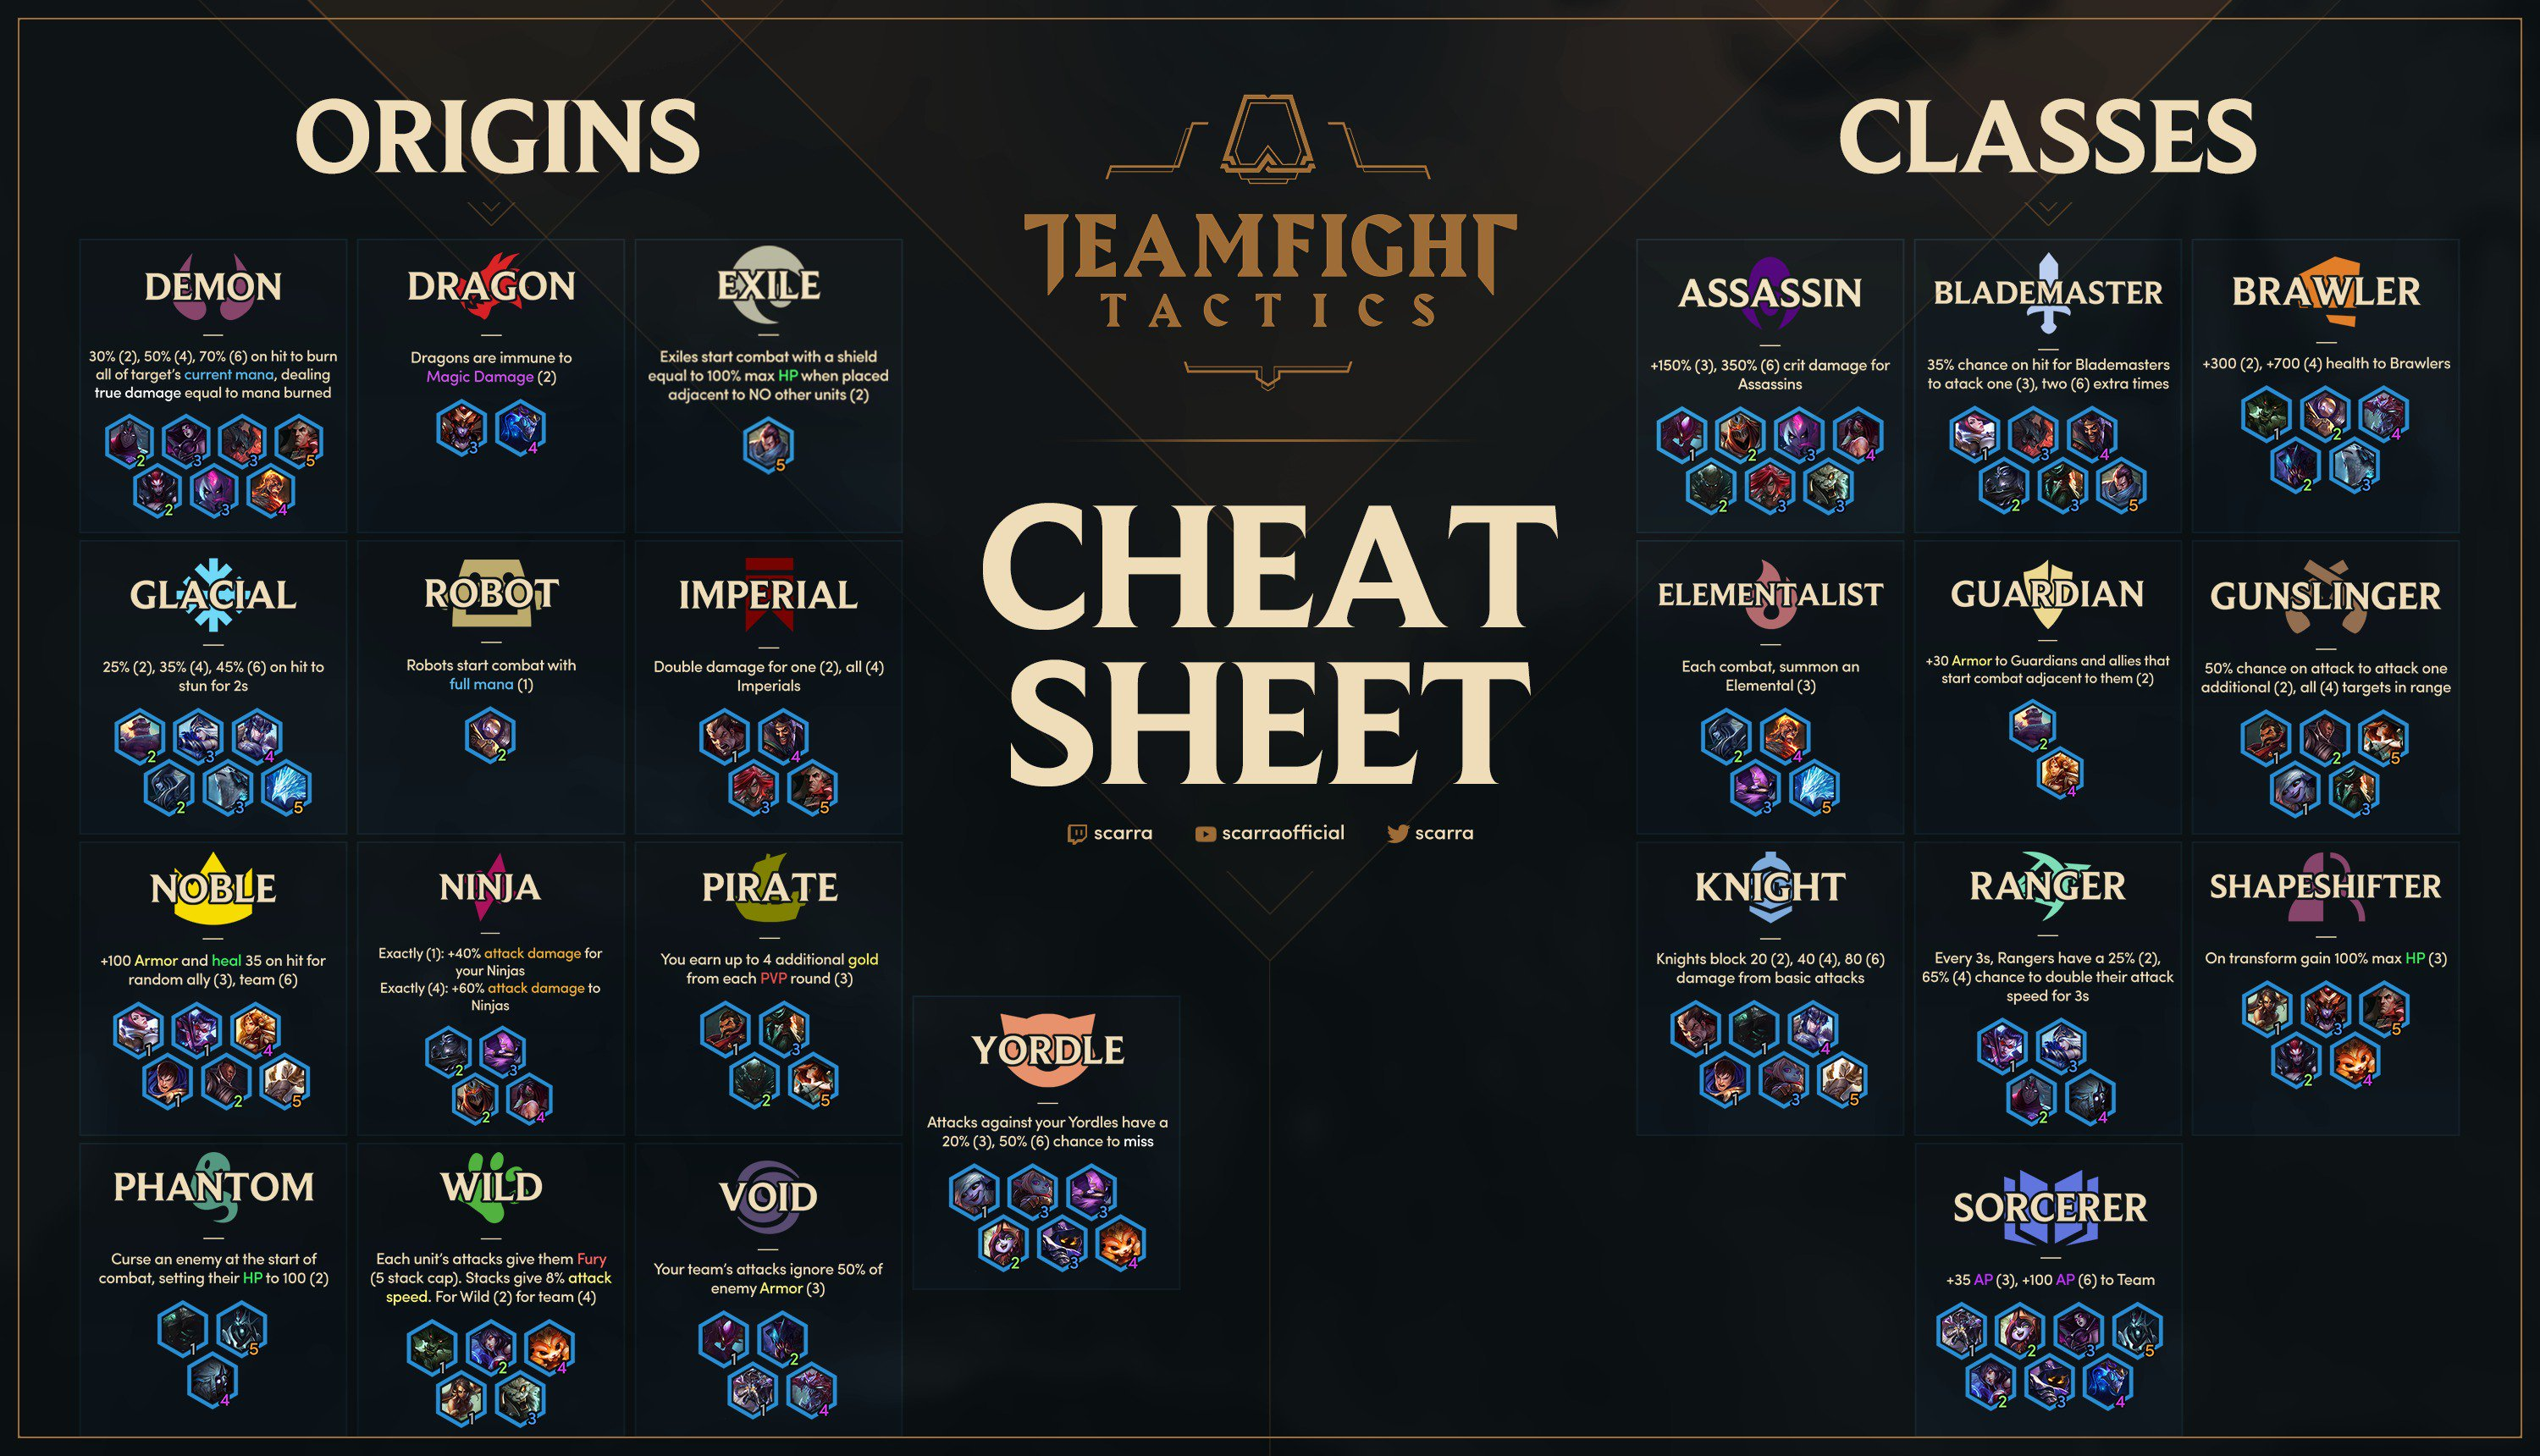 Origens e Classes Teamfight Tatics (Imagem: Twitter/scarra)